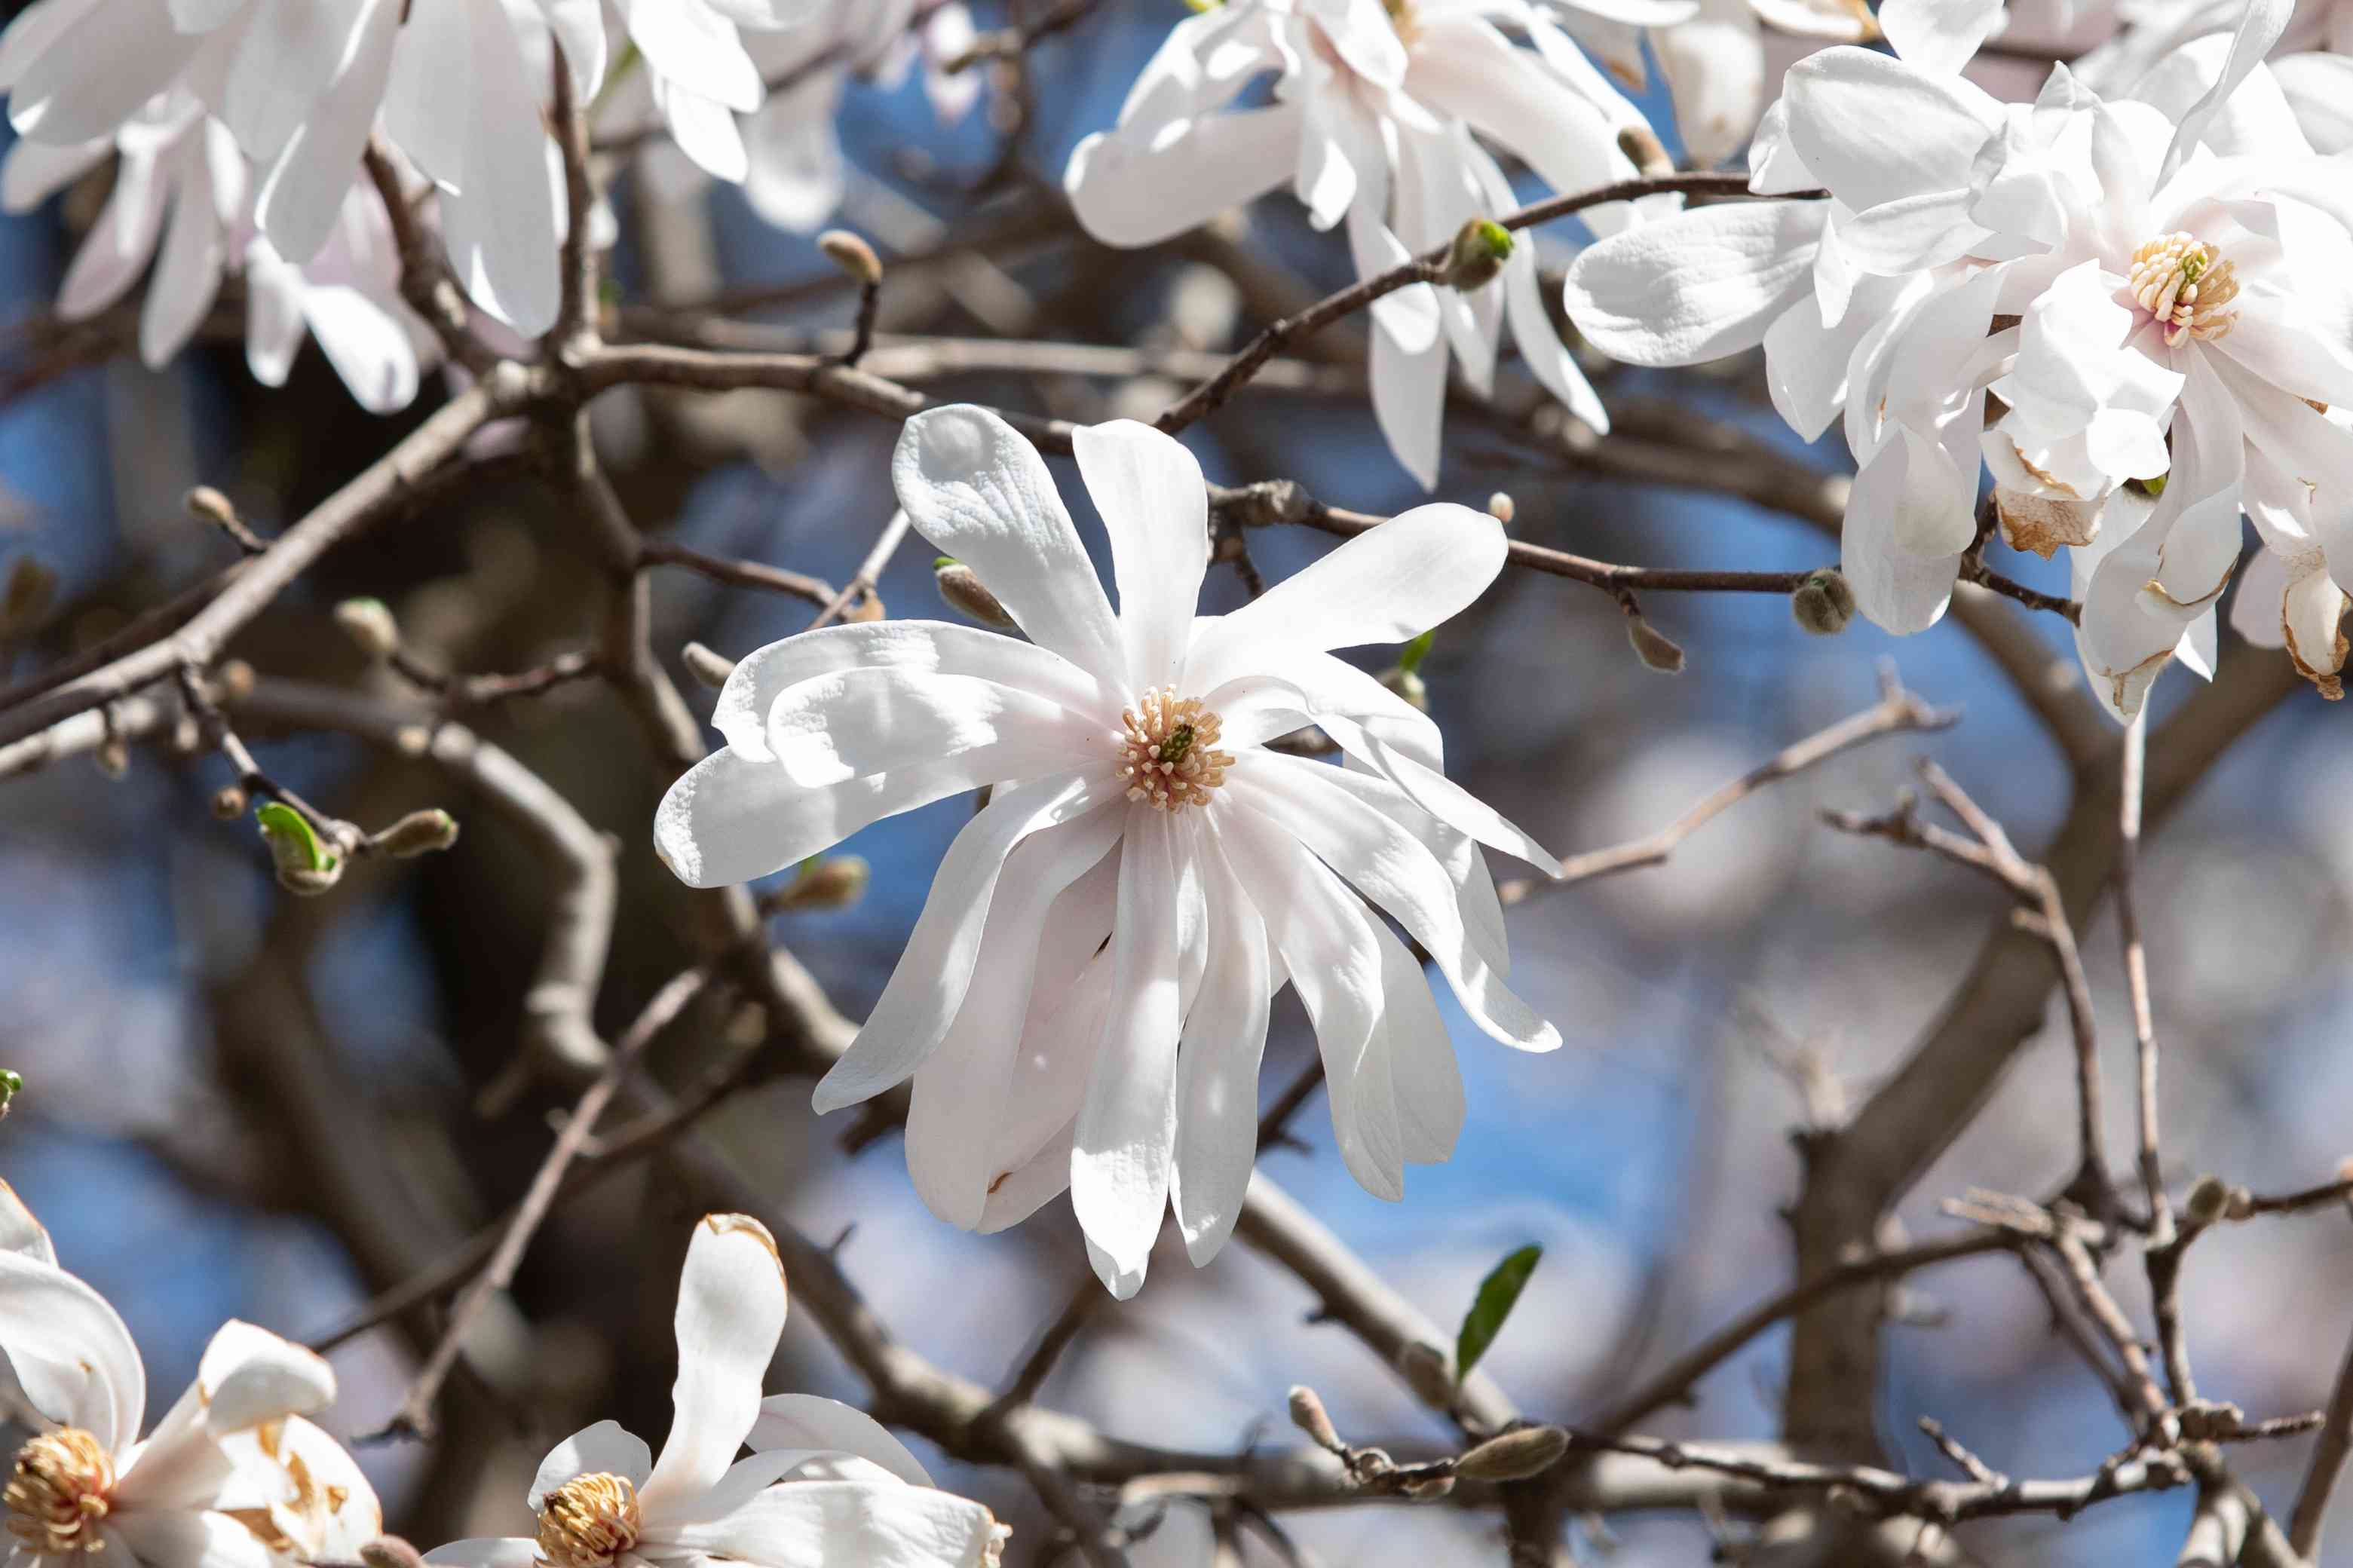 Star magnolia tree with white star-shaped flowers in branches closeup